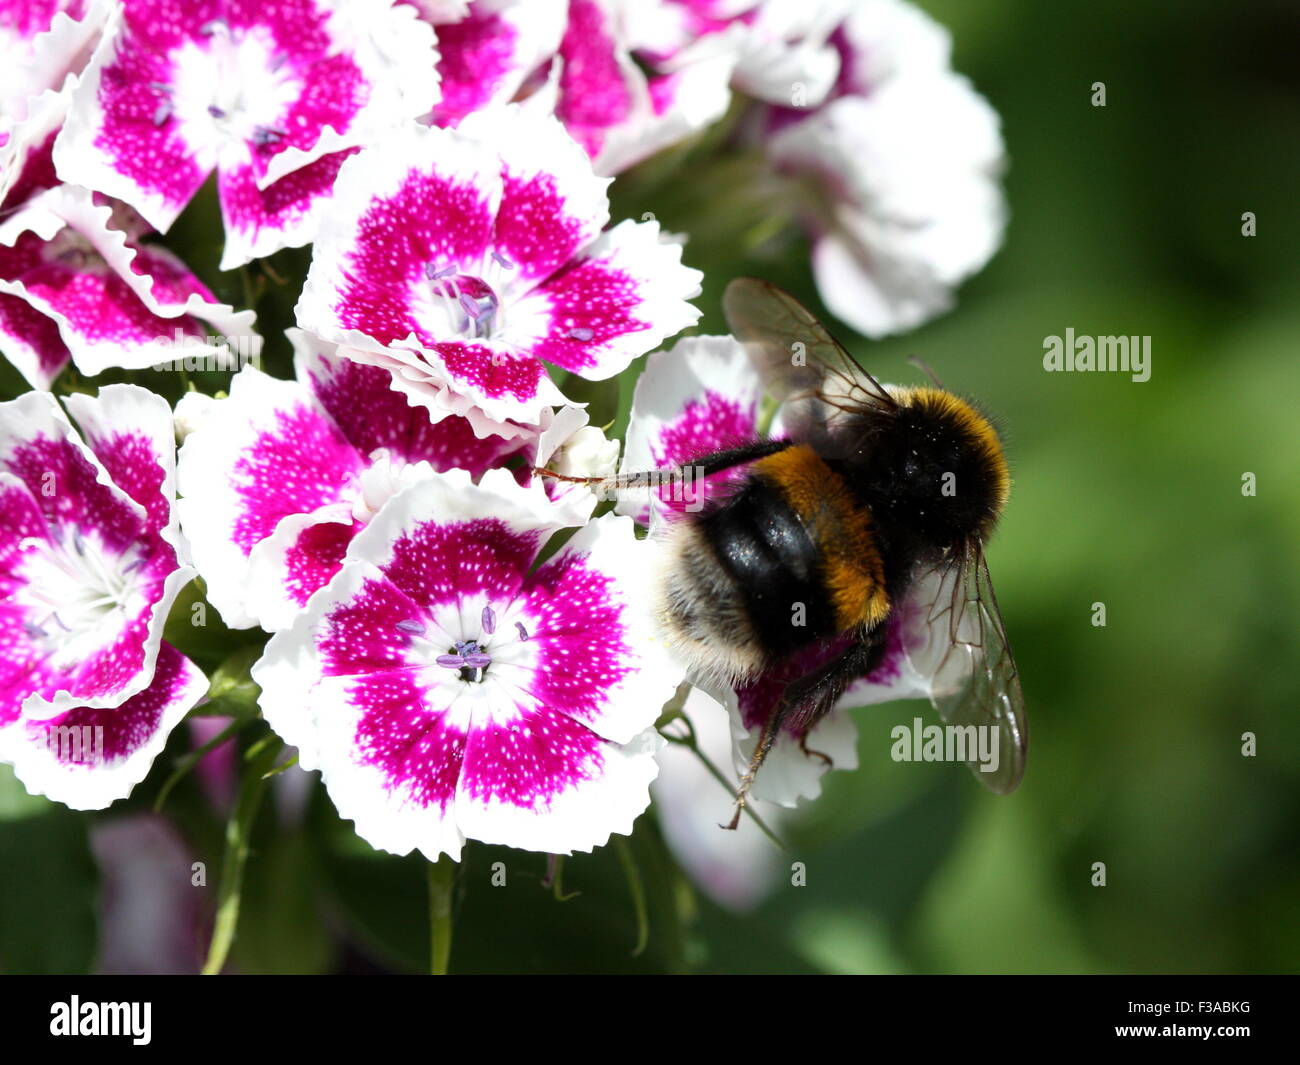 Bumble Bee on flower - Stock Image